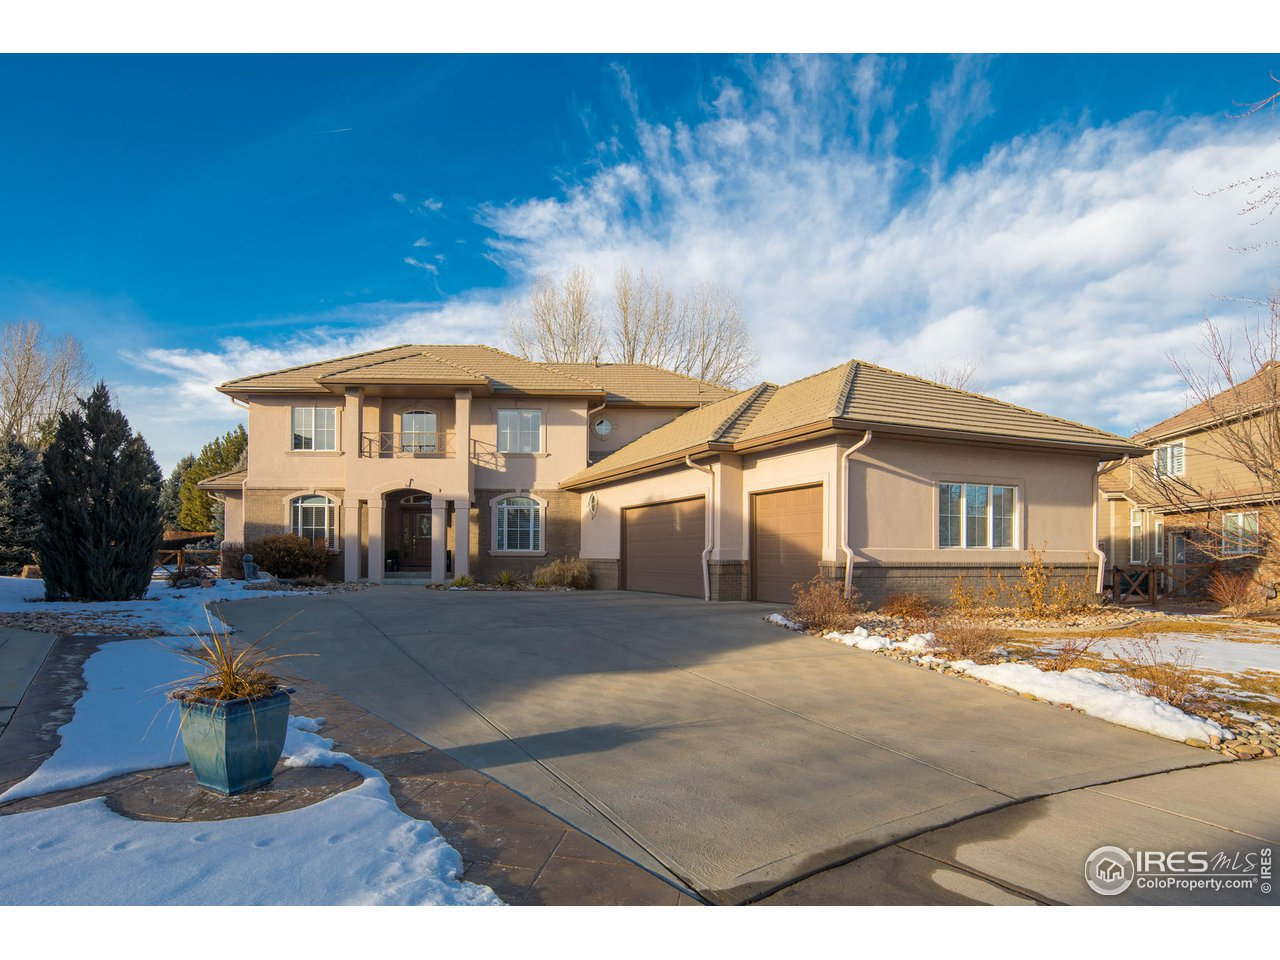 2805 W 115th Dr, Westminster CO 80234